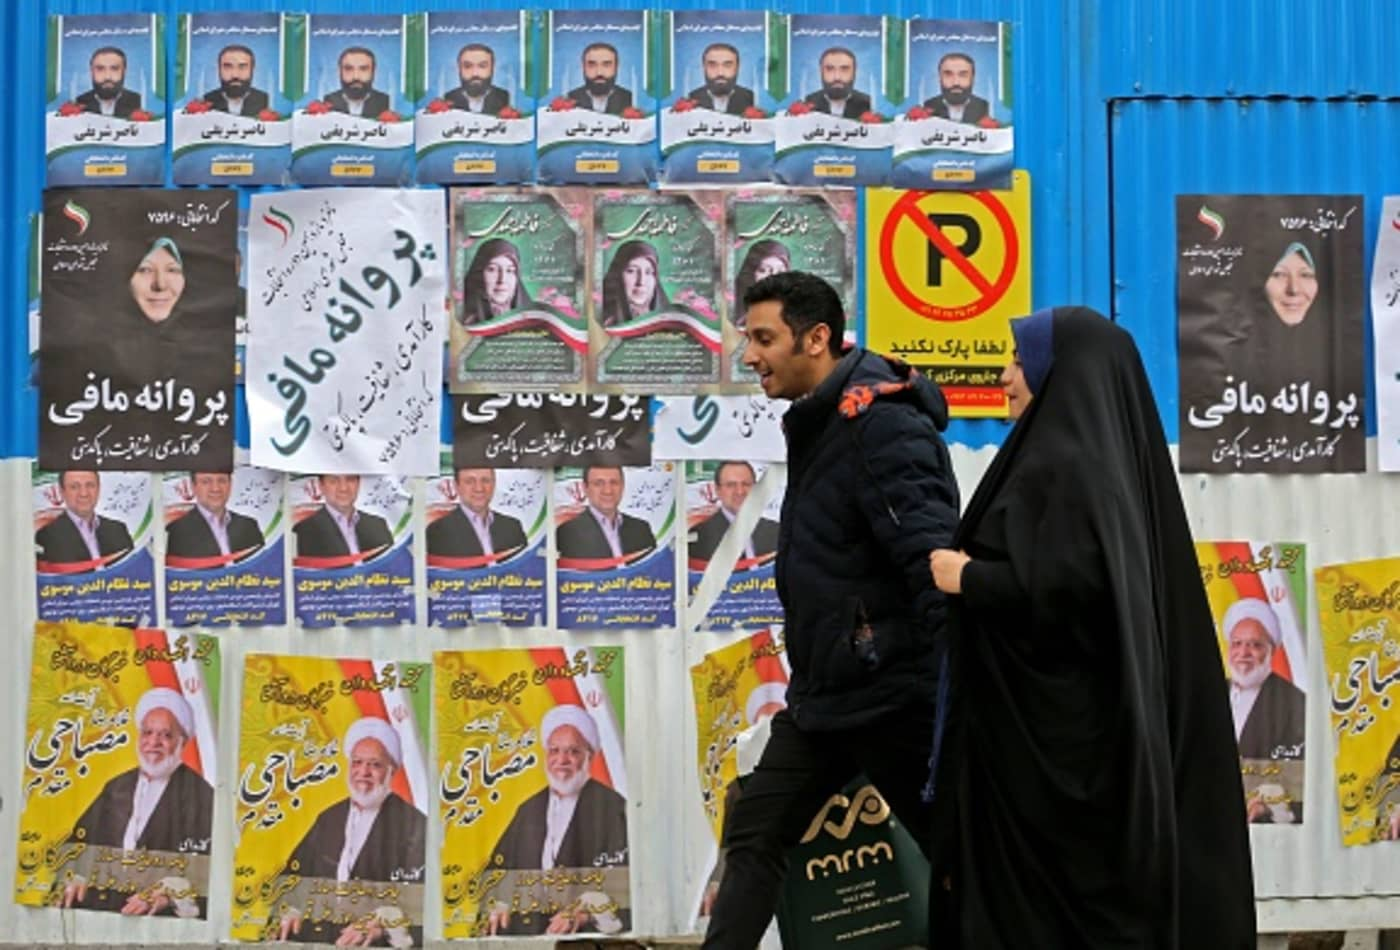 Iran elections to be dominated by hard-liners as young people refuse to vote: 'It's a joke'